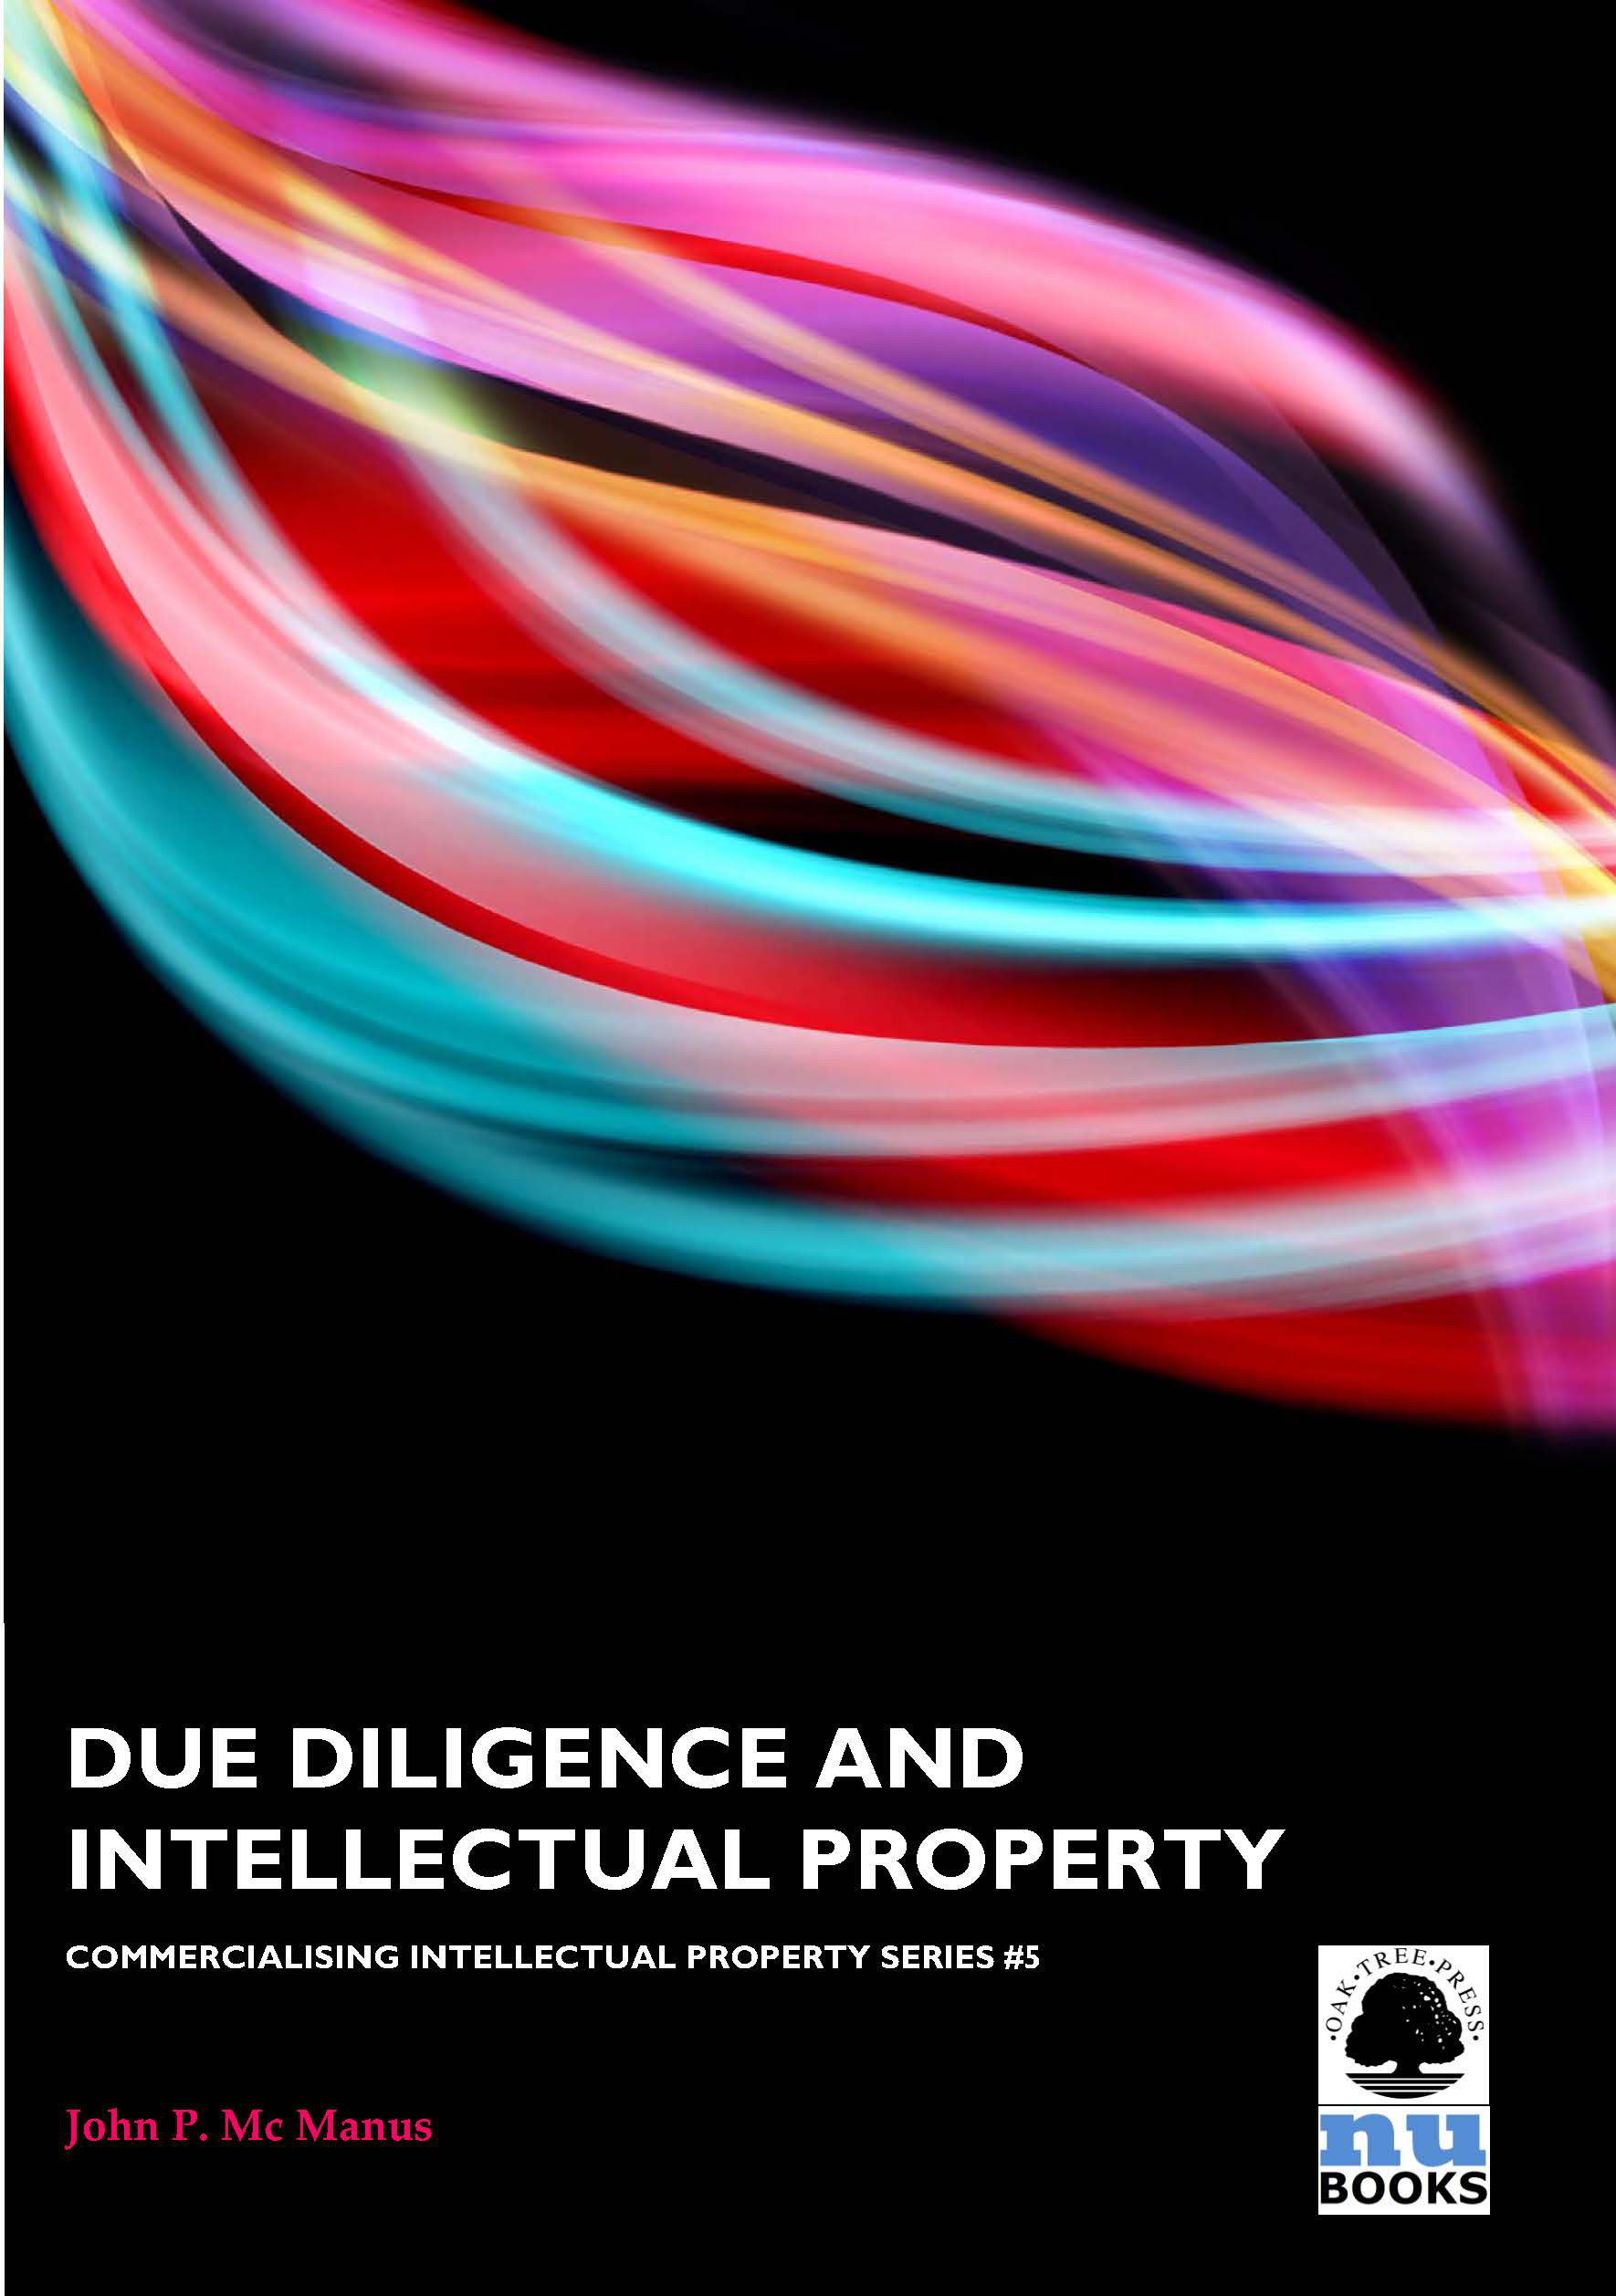 Due Diligence and Intellectual Property